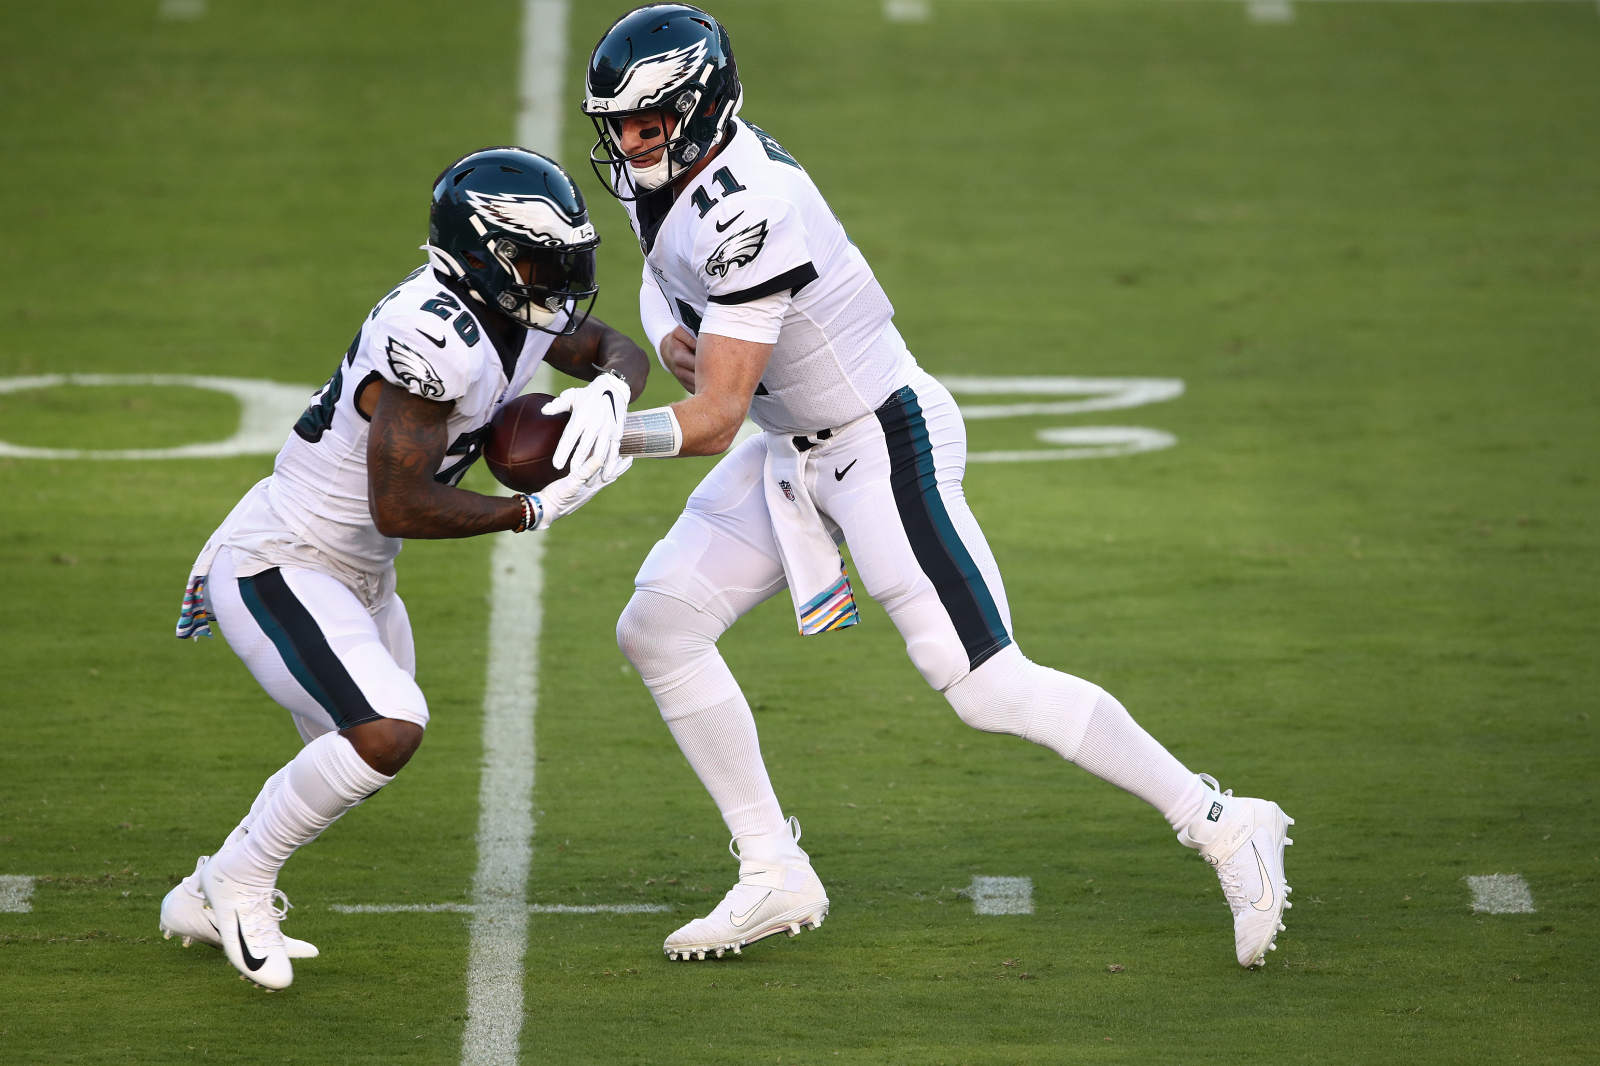 Philadelphia Eagles fans were terrified when star RB Miles Sanders went down with an injury on Sunday. Well, the Eagles just got very lucky.